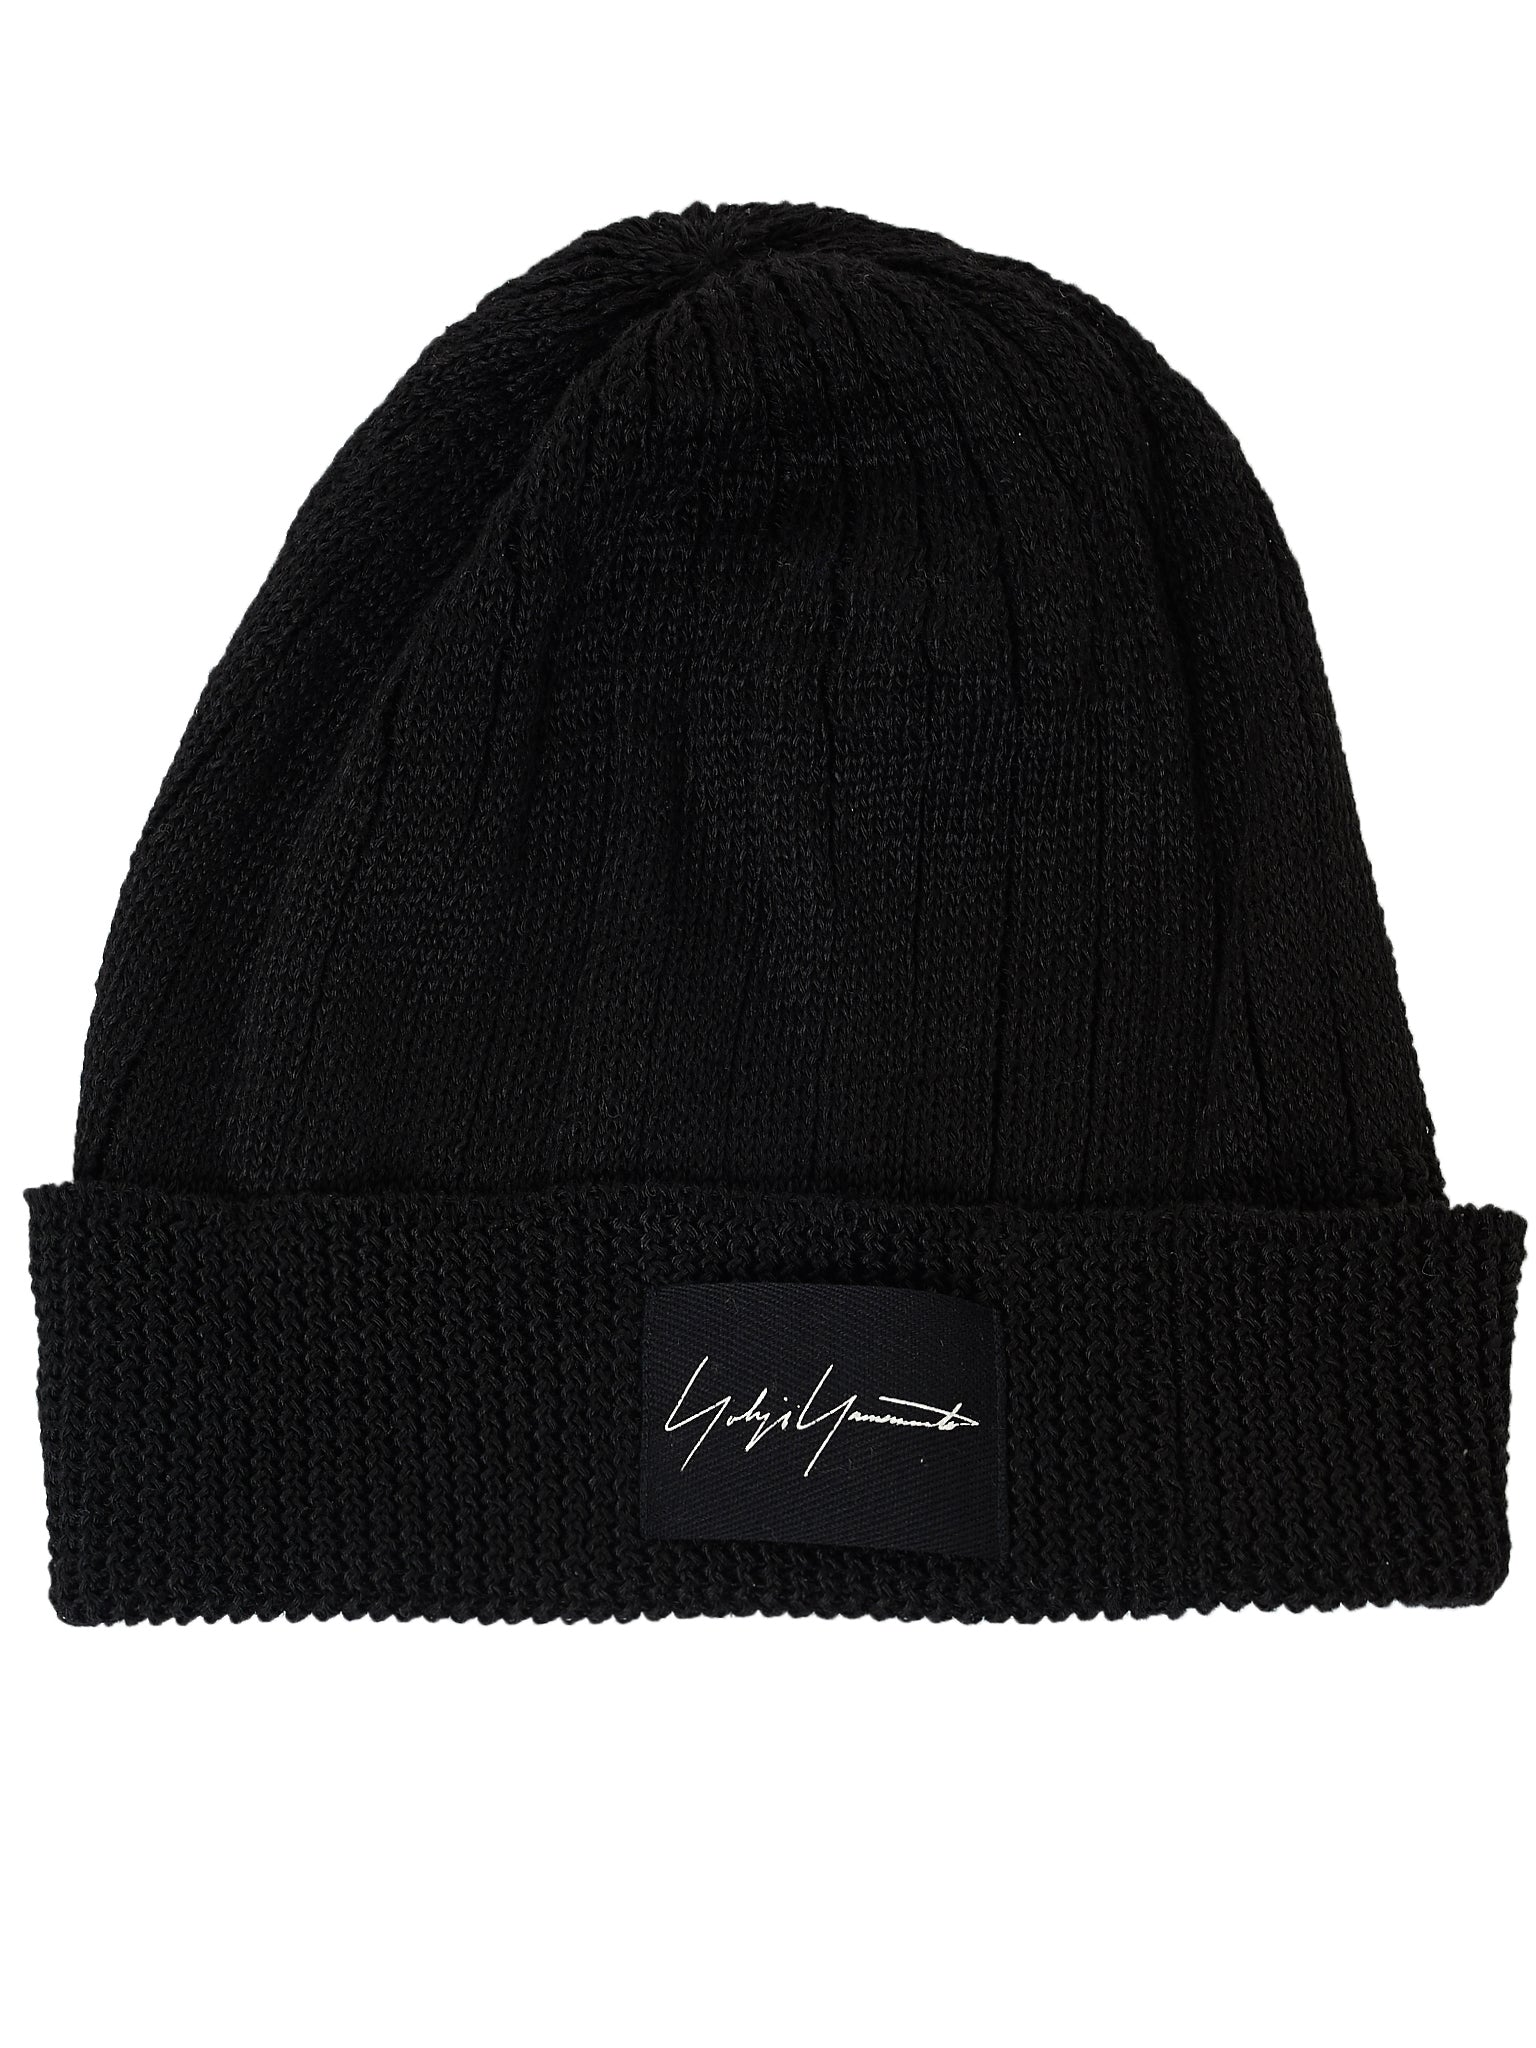 French Linen Beanie (HW-H05-363-4-BLACK)